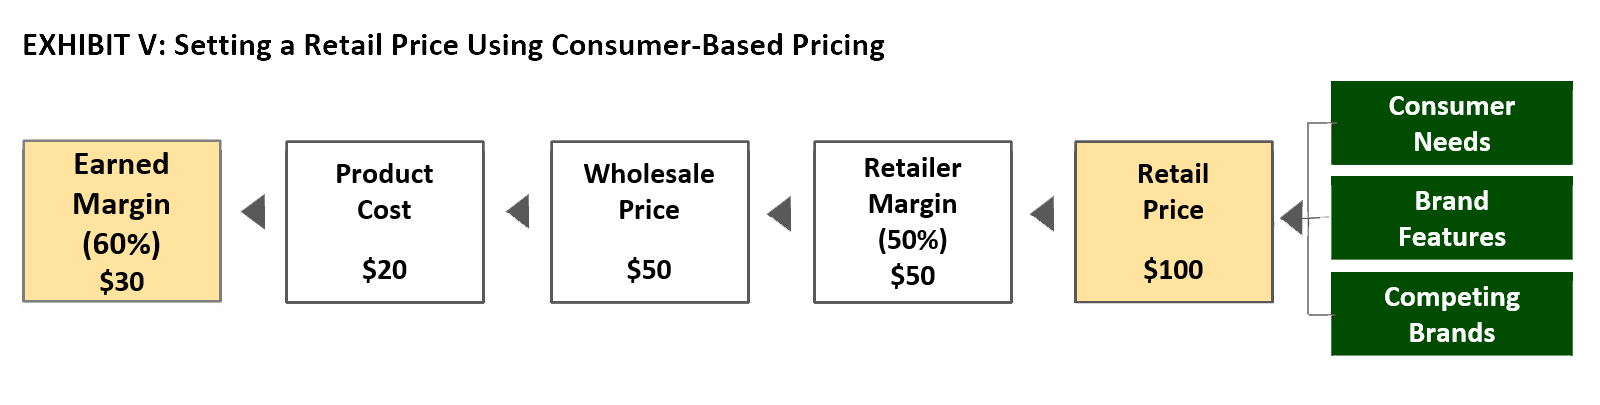 Exhibit V: Setting a Retail Price Using Consumer-Based Pricing